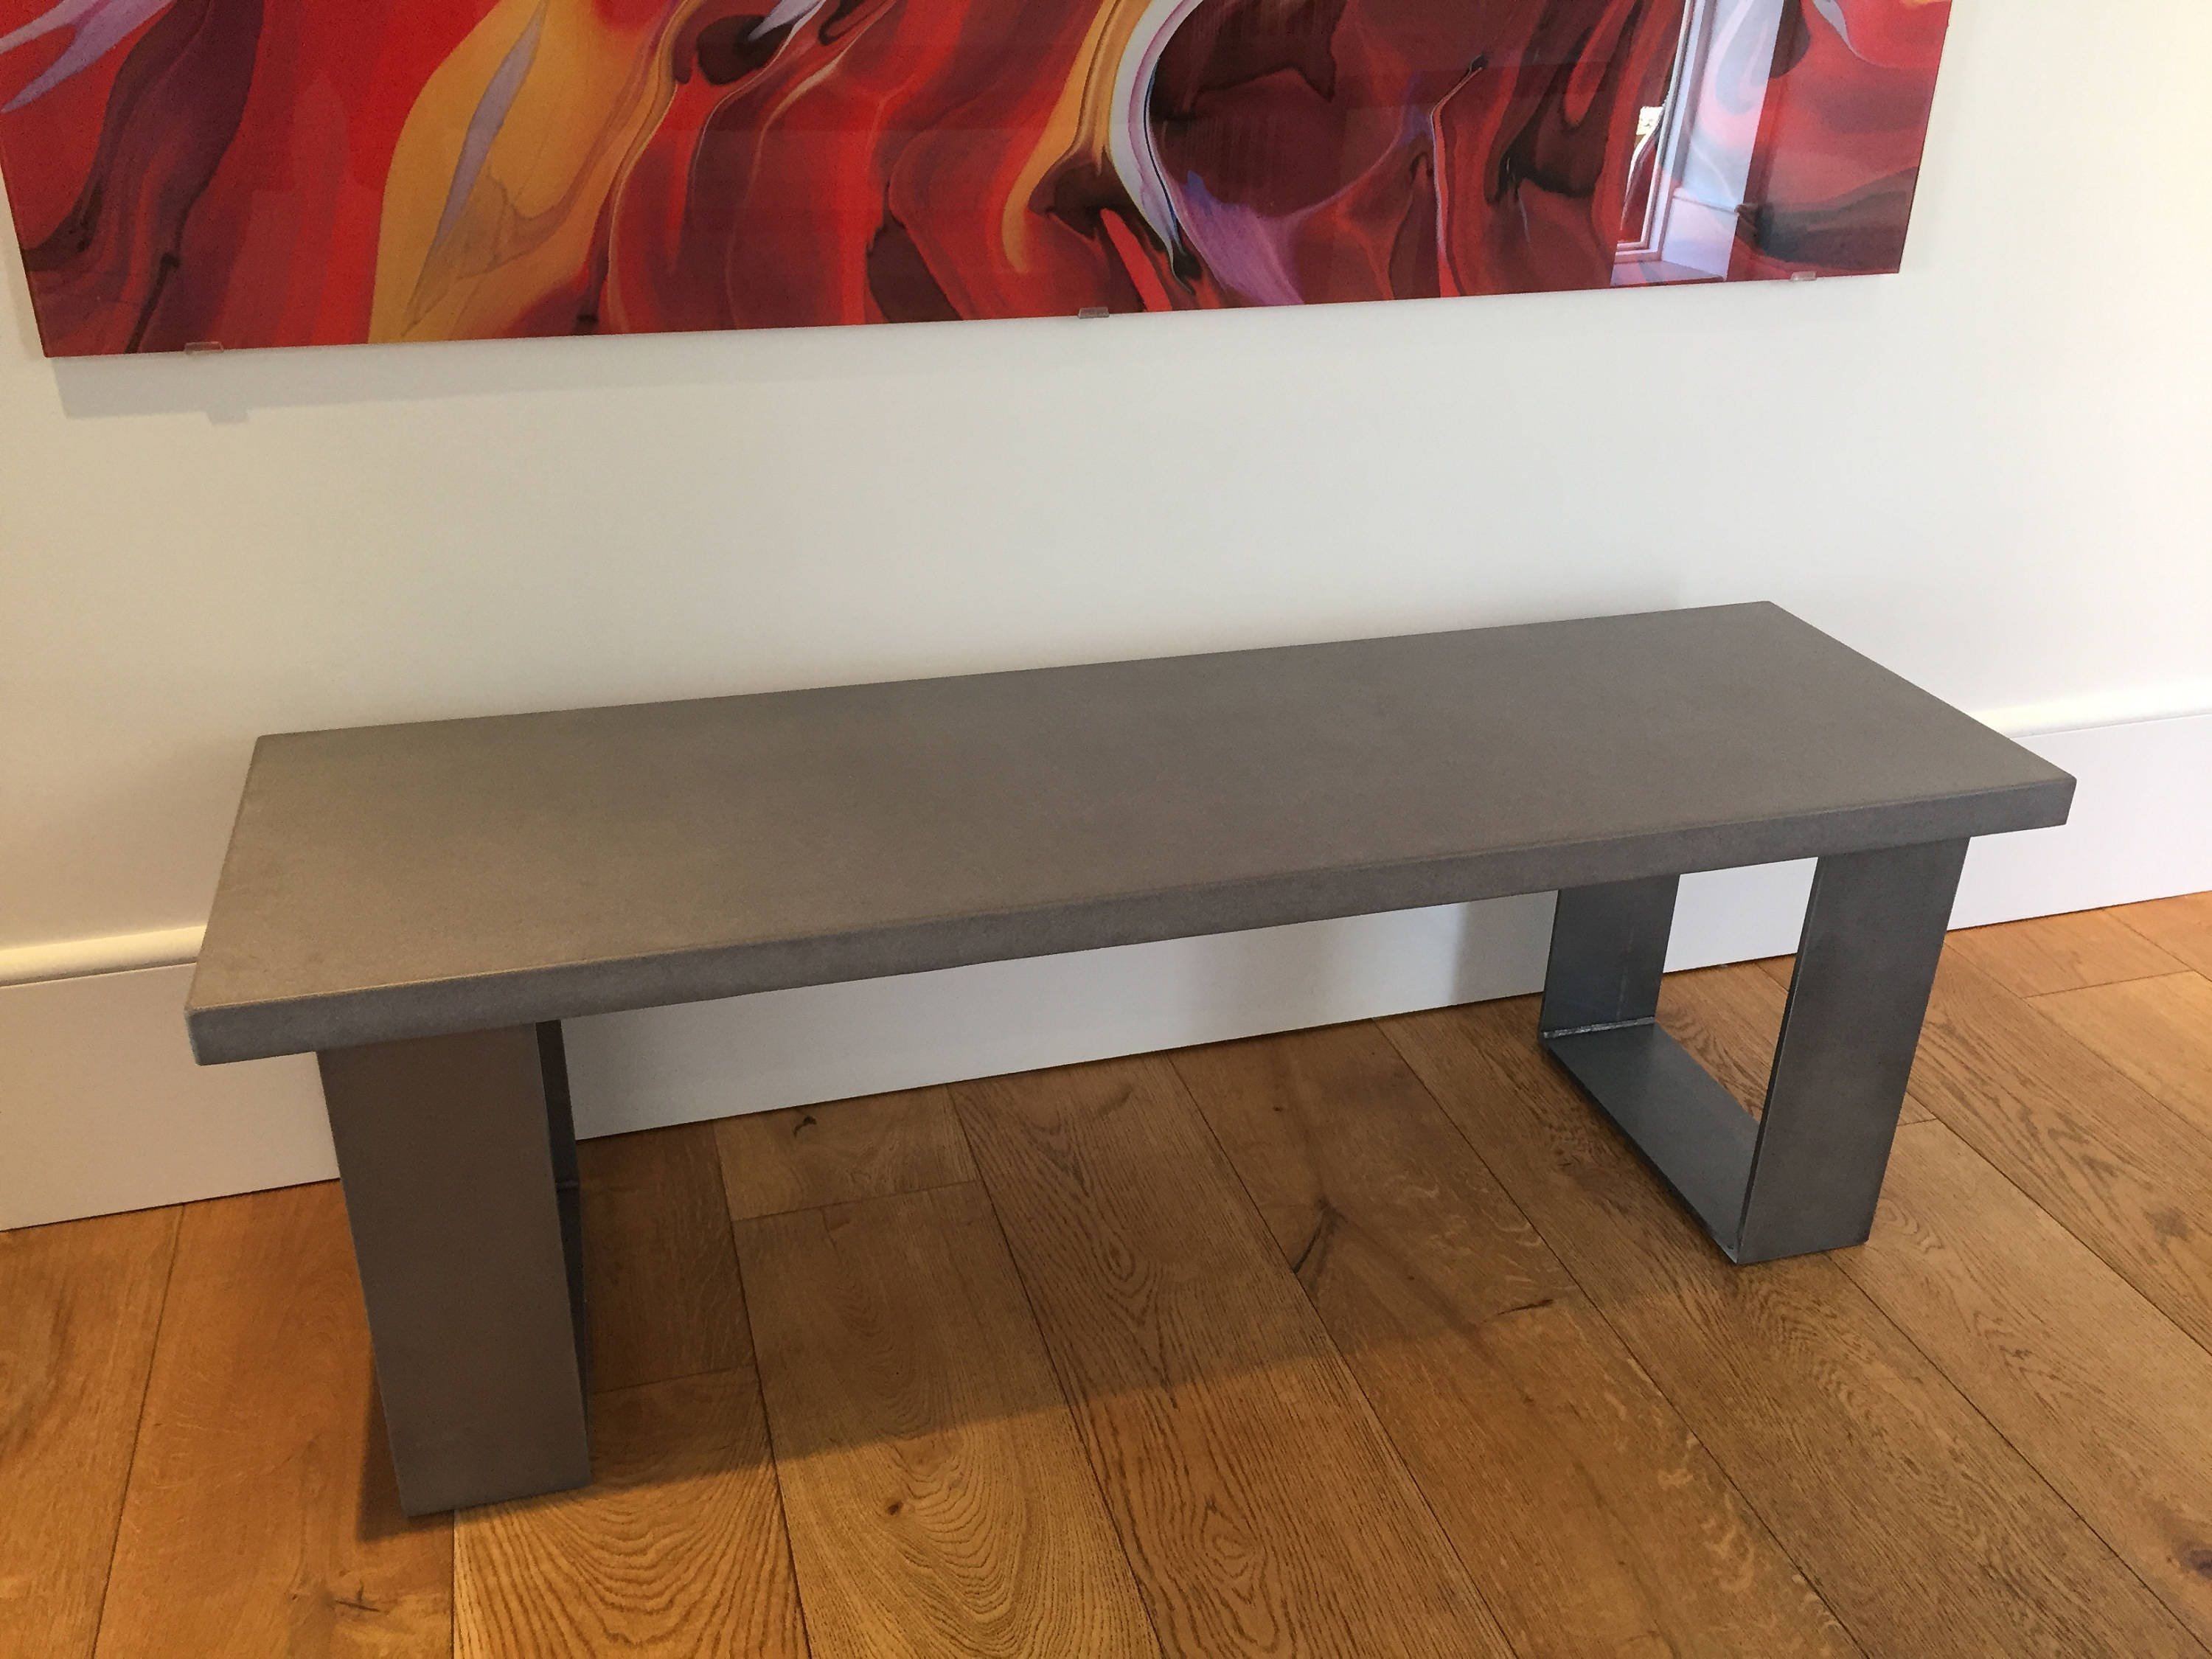 Concrete Industrial Bench in Cool Grey  with flat 8mm thick Steel legs  Clear Coat  Seat  Chair